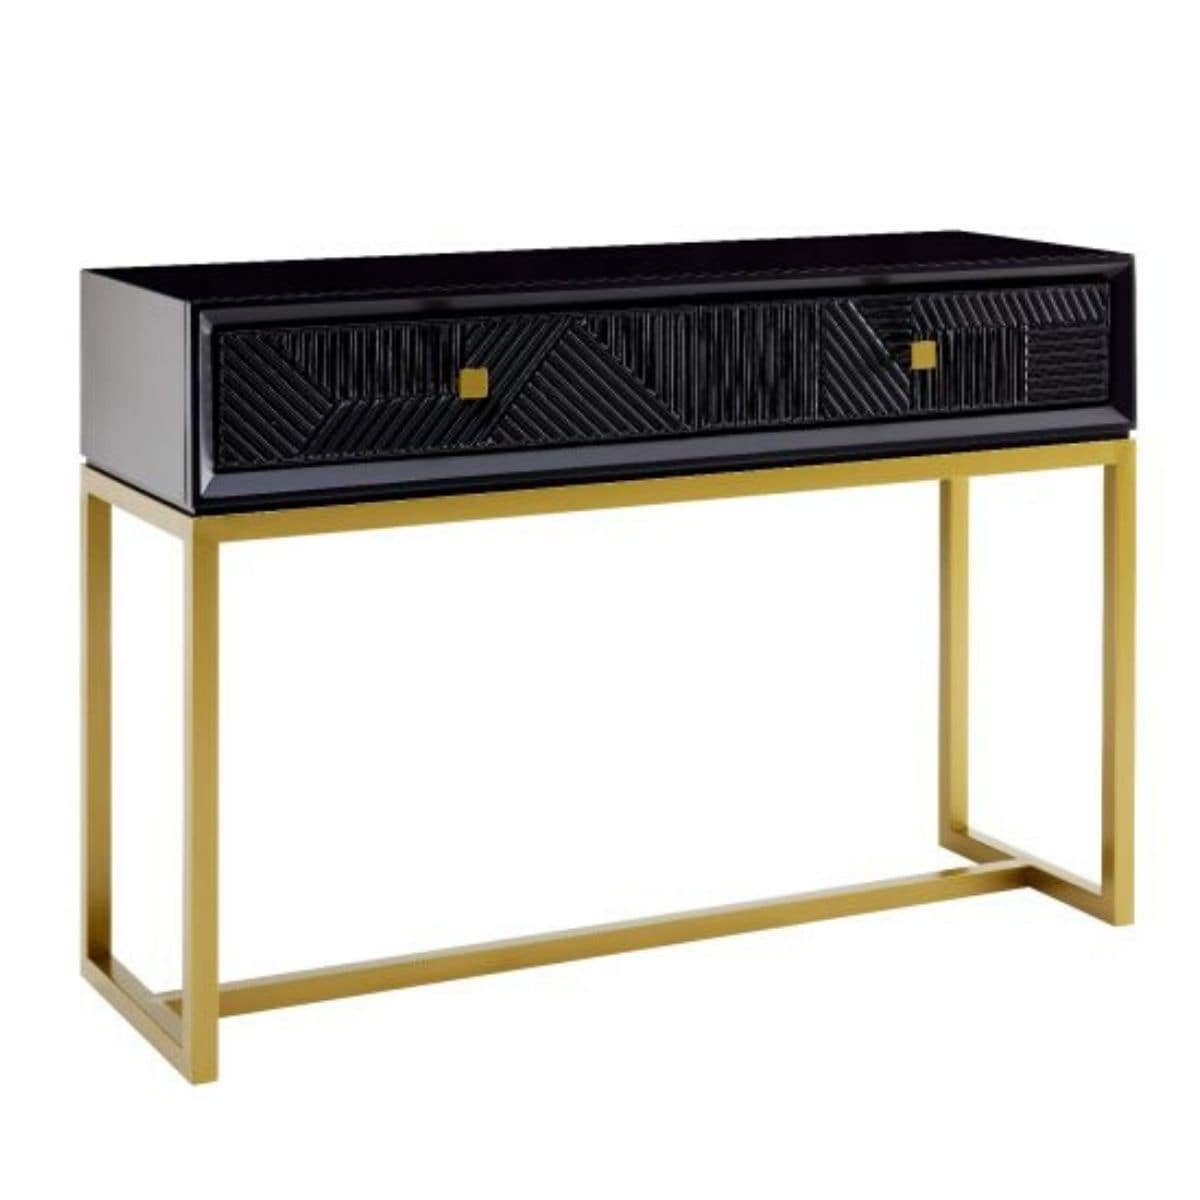 Ottawa Black and Gold Console Table